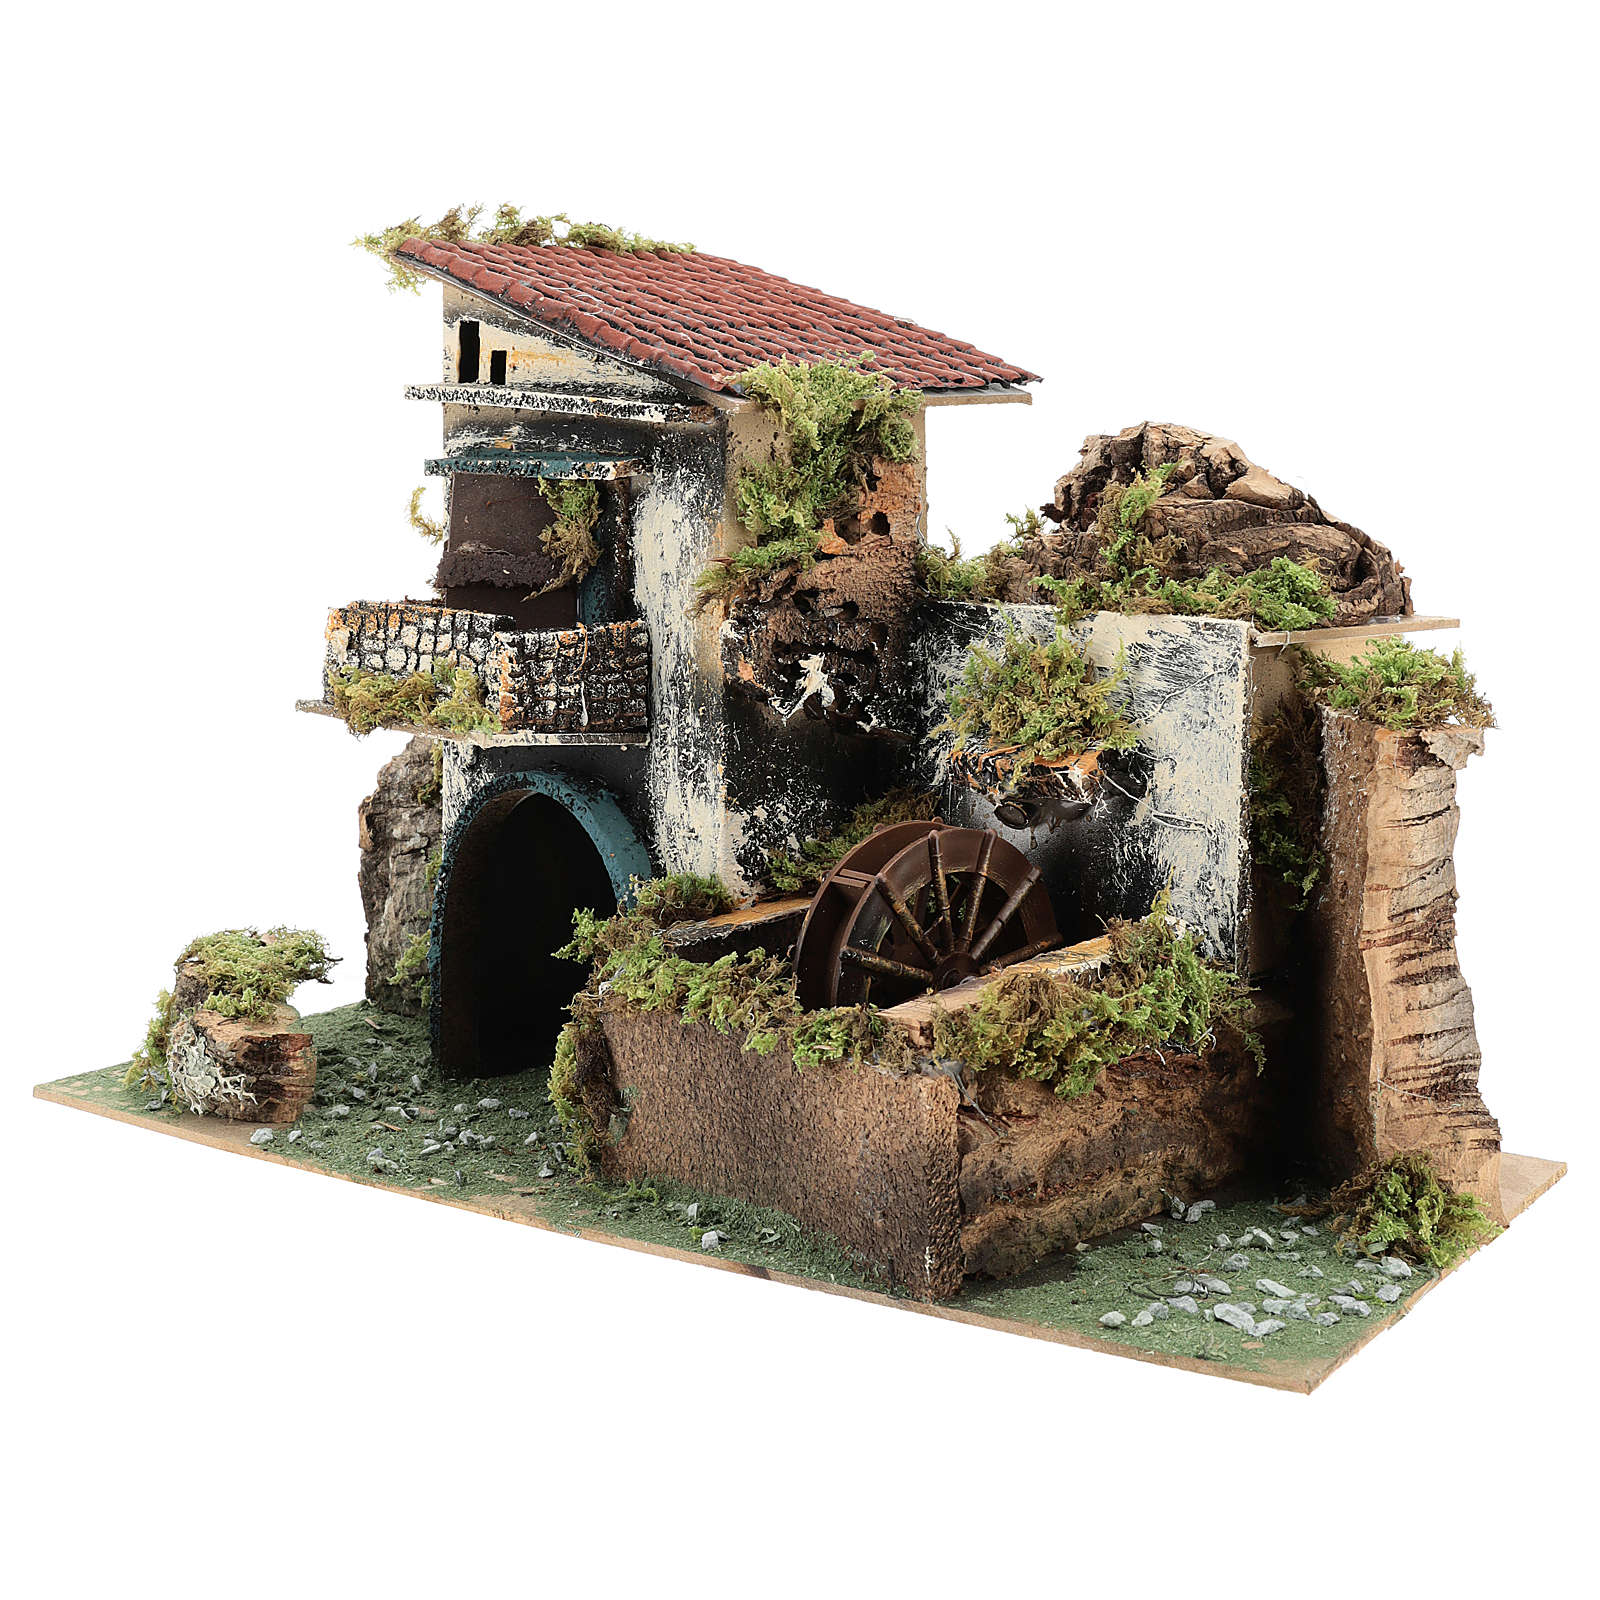 Neapolitan Nativity scene setting with watermill for 10 cm characters 4